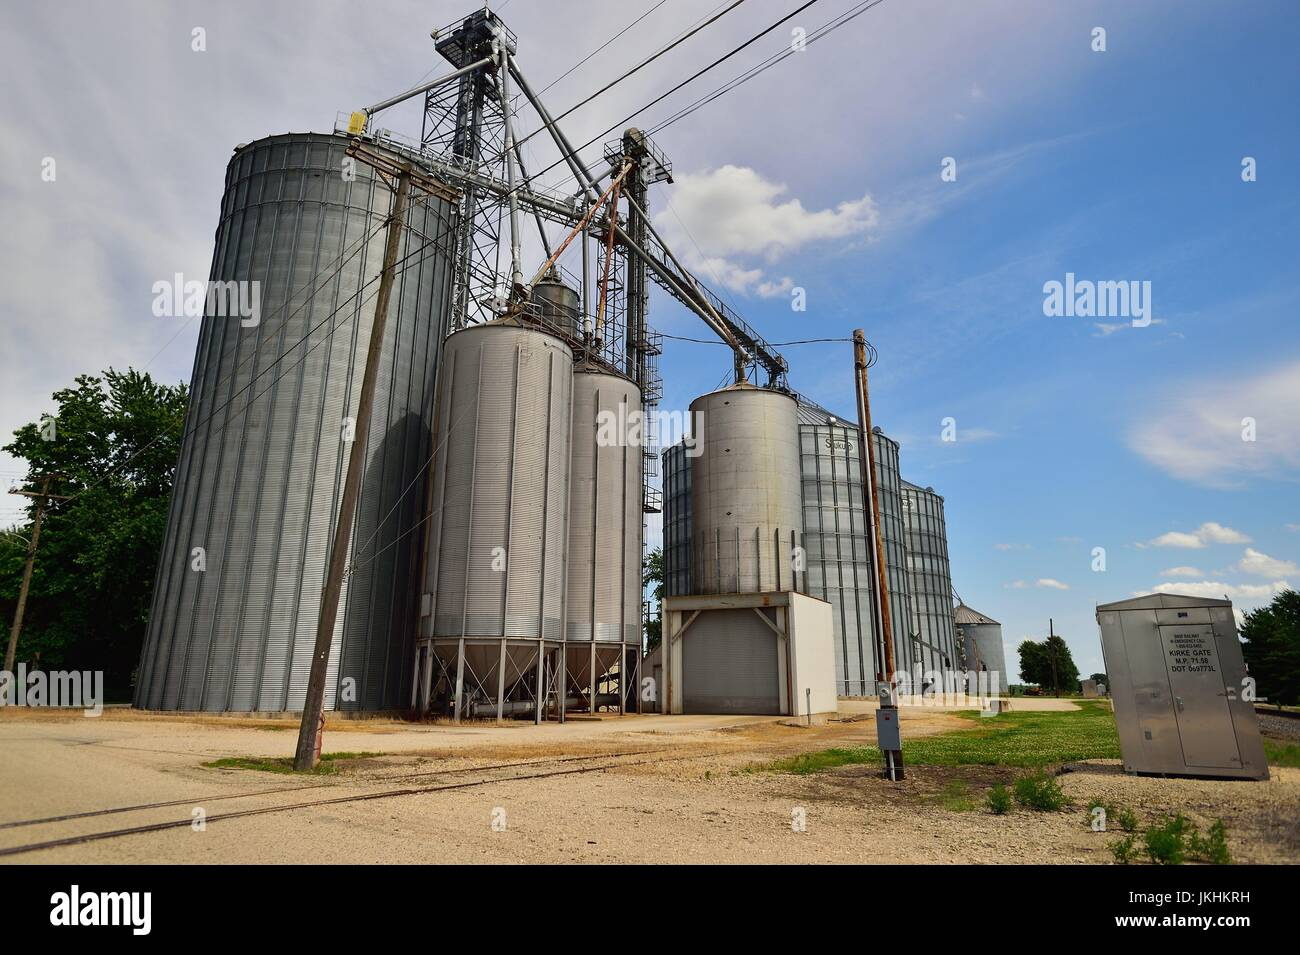 Lee, Illinois, USA. A series of storage tanks form a cooperative sitting along side a railroad siding in a small - Stock Image